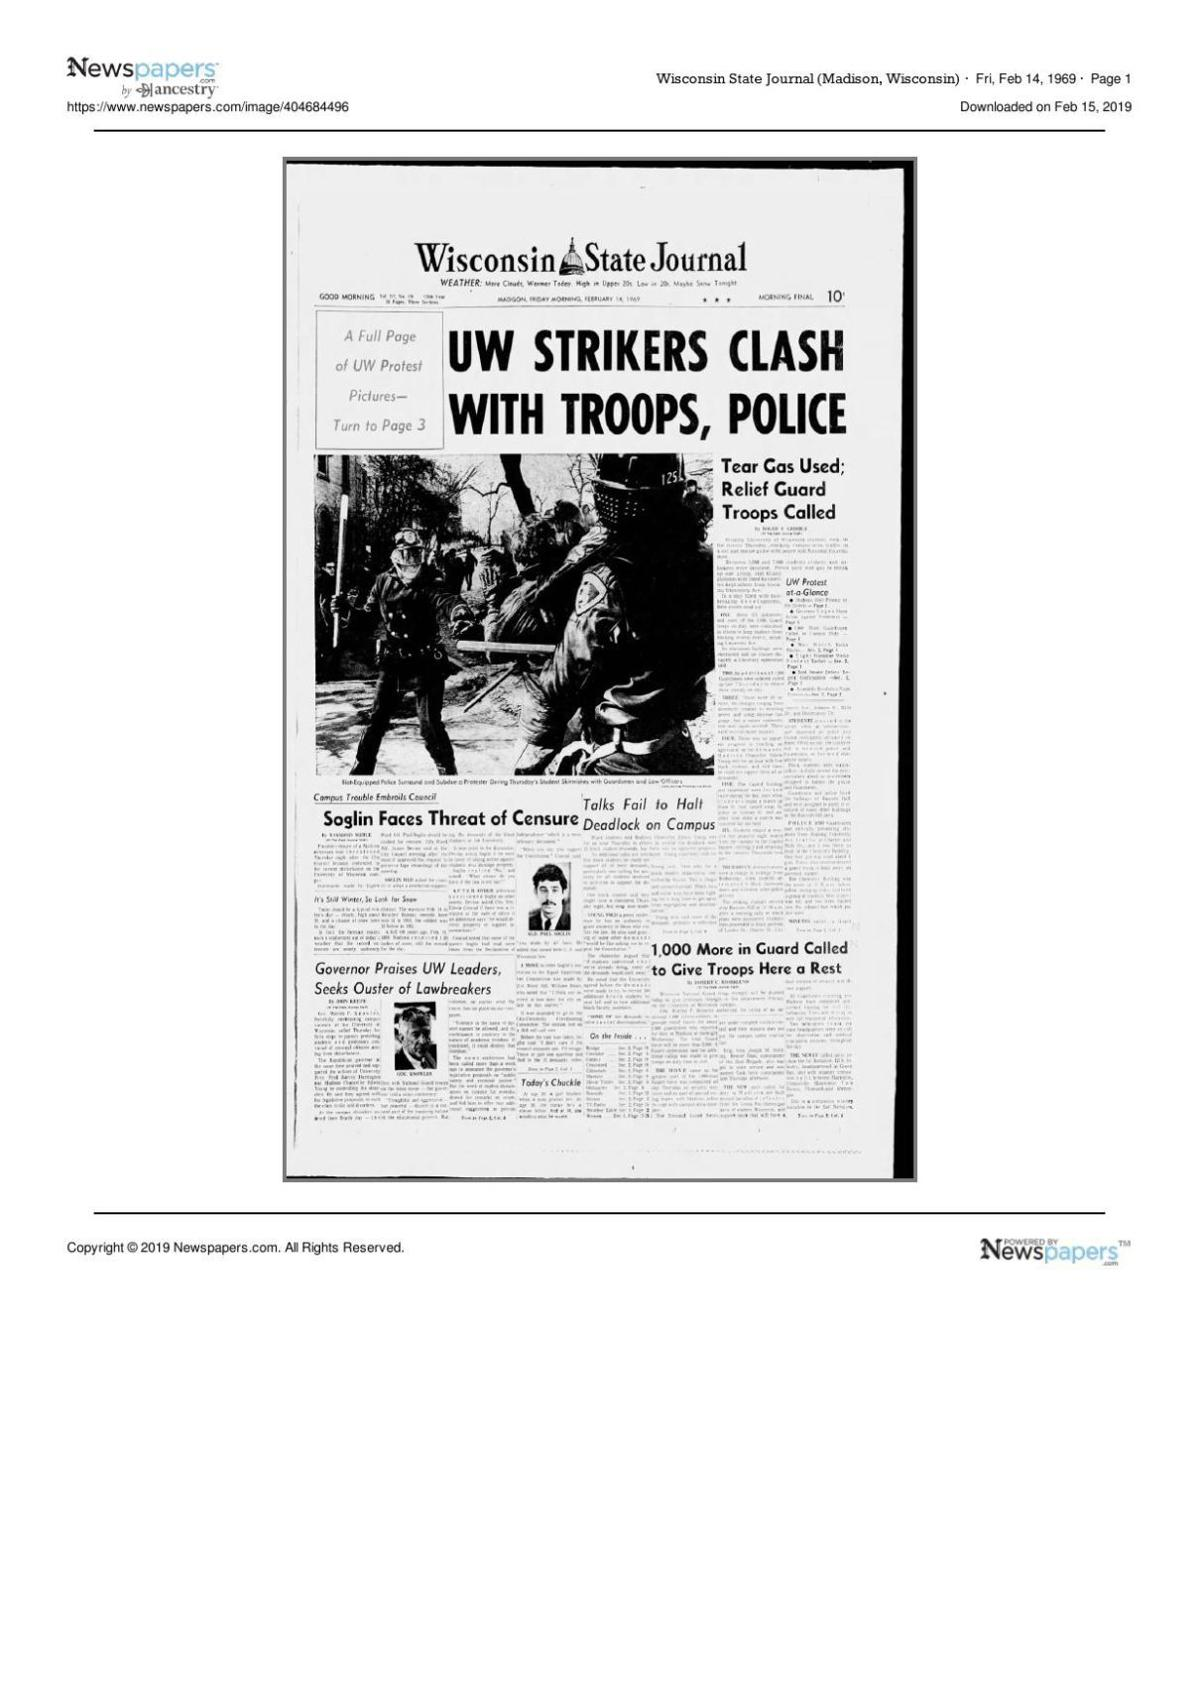 Wisconsin State Journal Front Page, Feb. 14, 1969